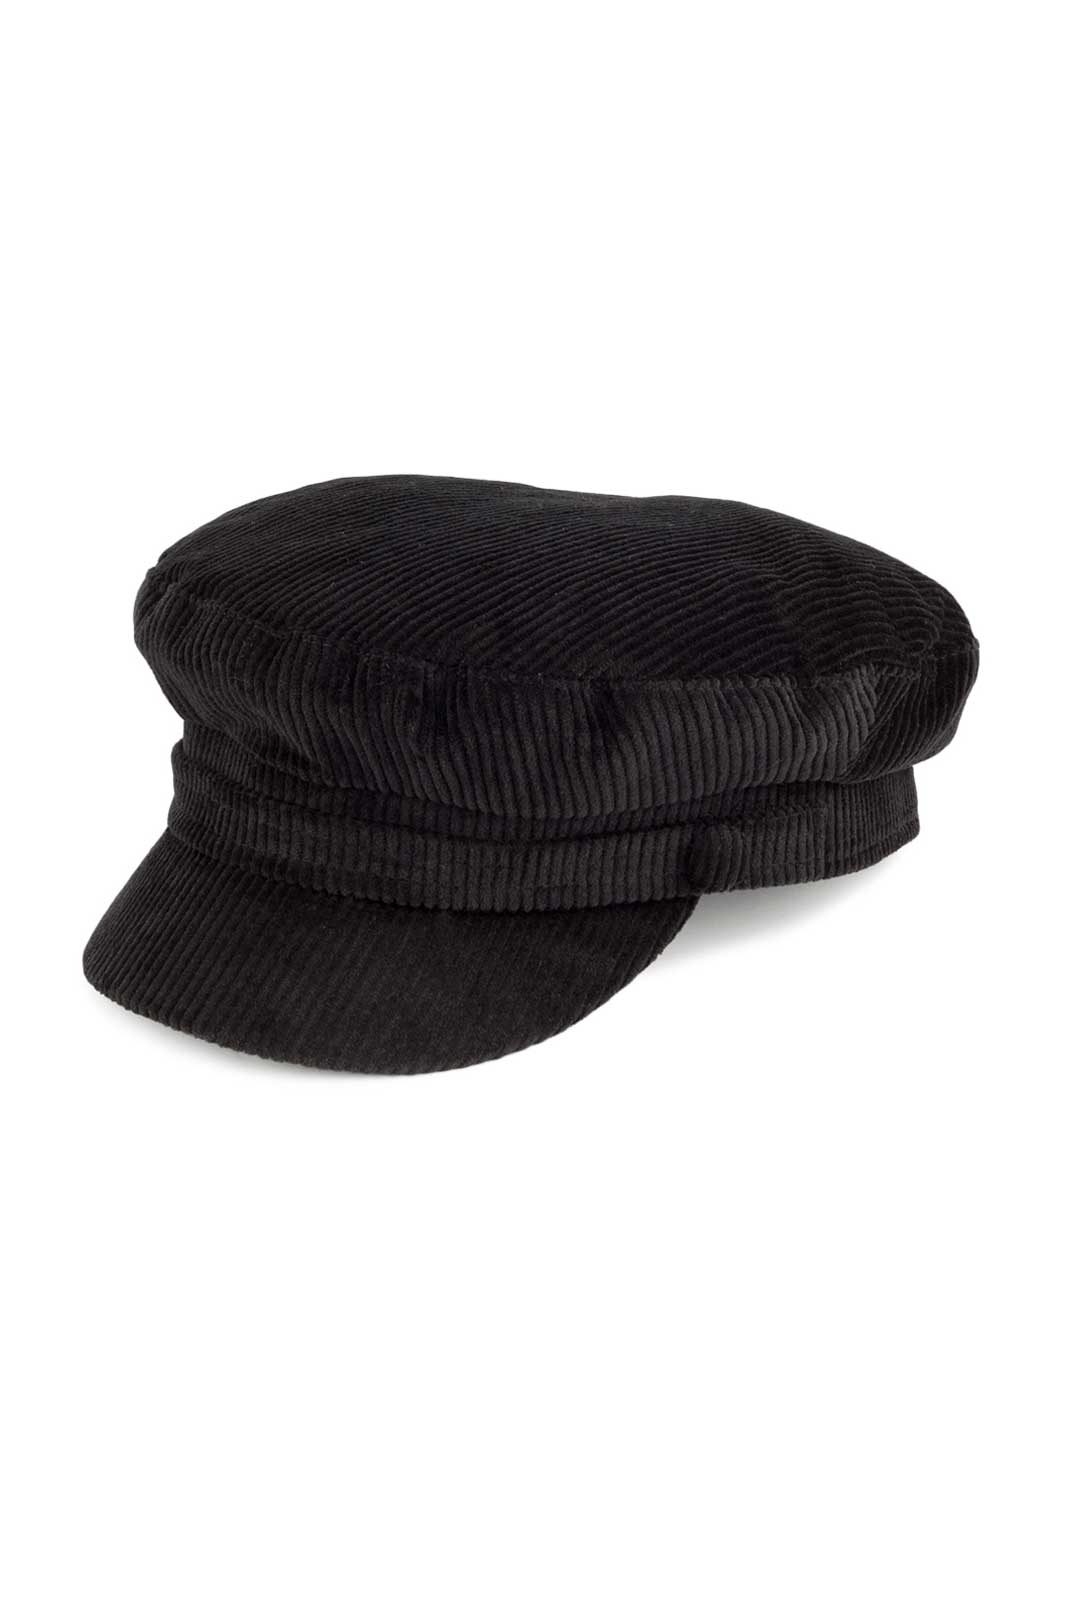 Sailor Fiddler Corduroy Cap Black